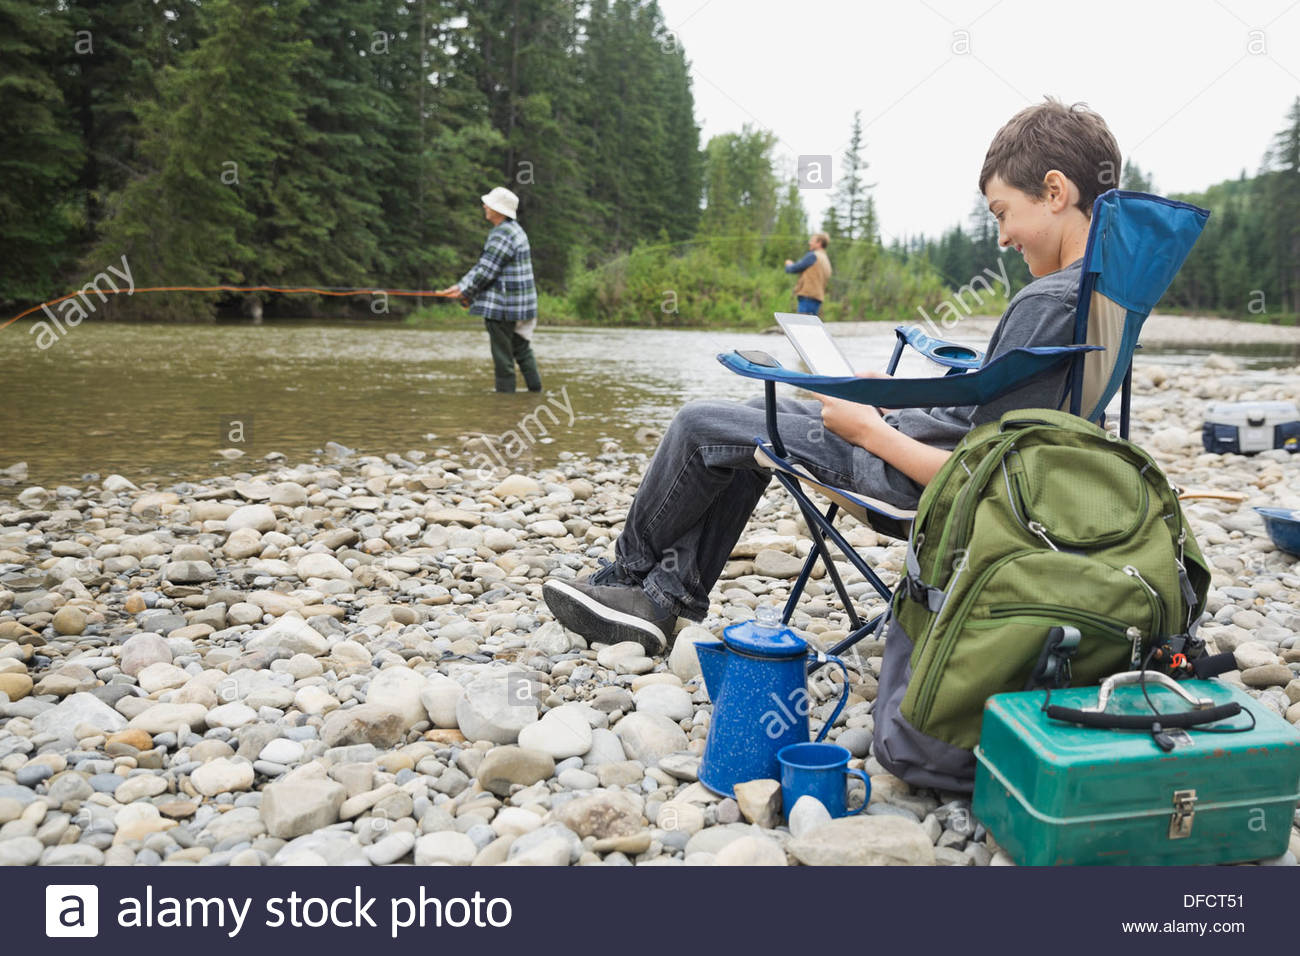 Boy using digital tablet while taking a break from fishing - Stock Image